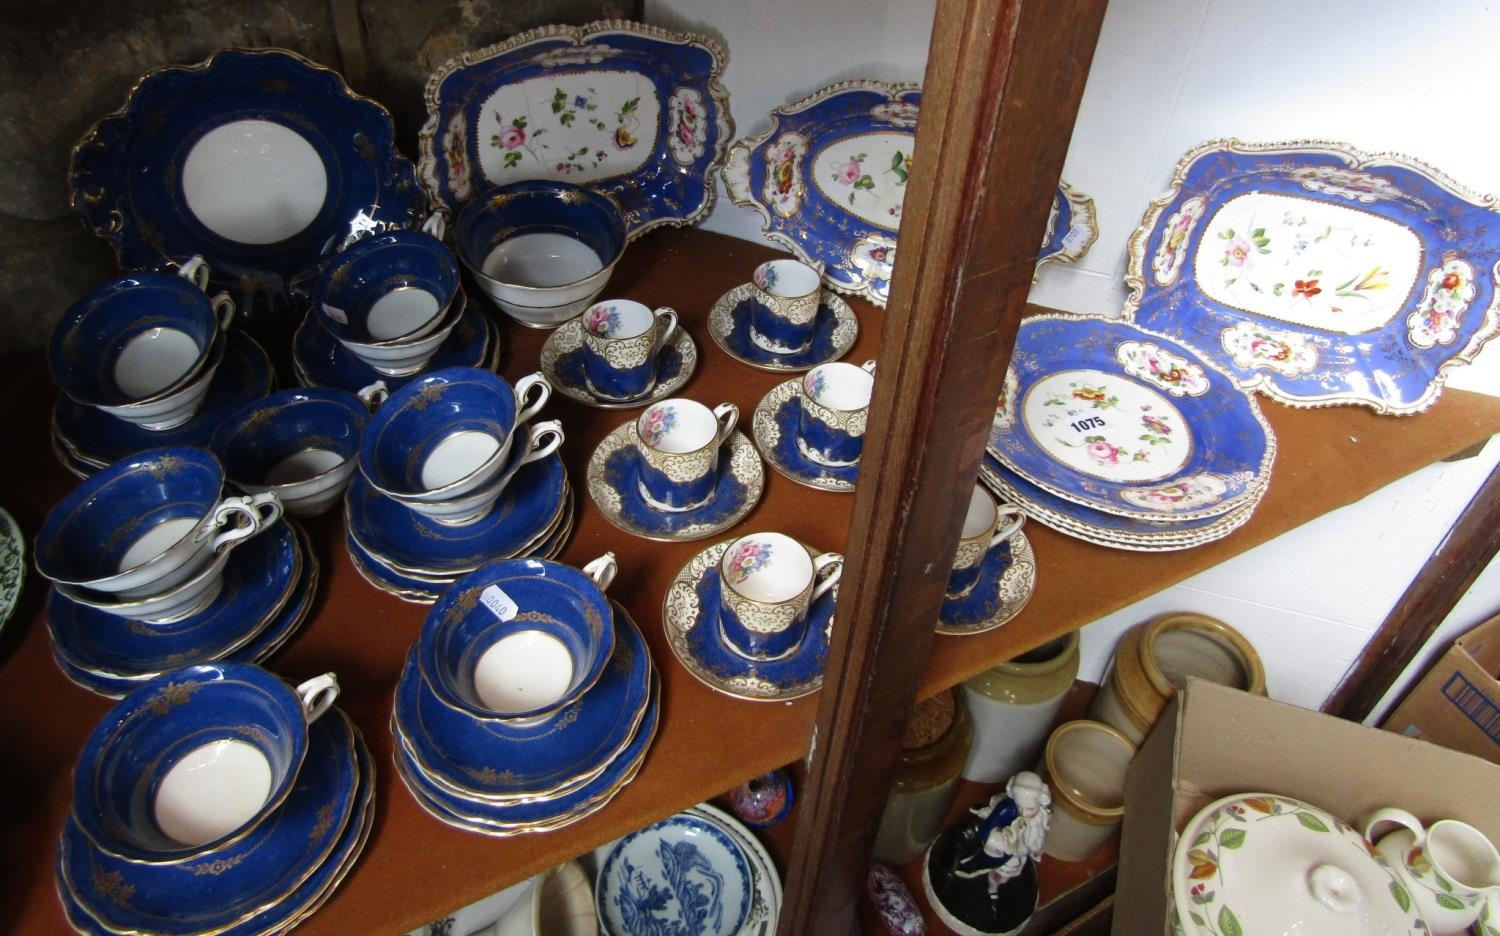 A collection of 19th century dessert wares with reserved floral panels on a blue ground, - Bild 2 aus 2